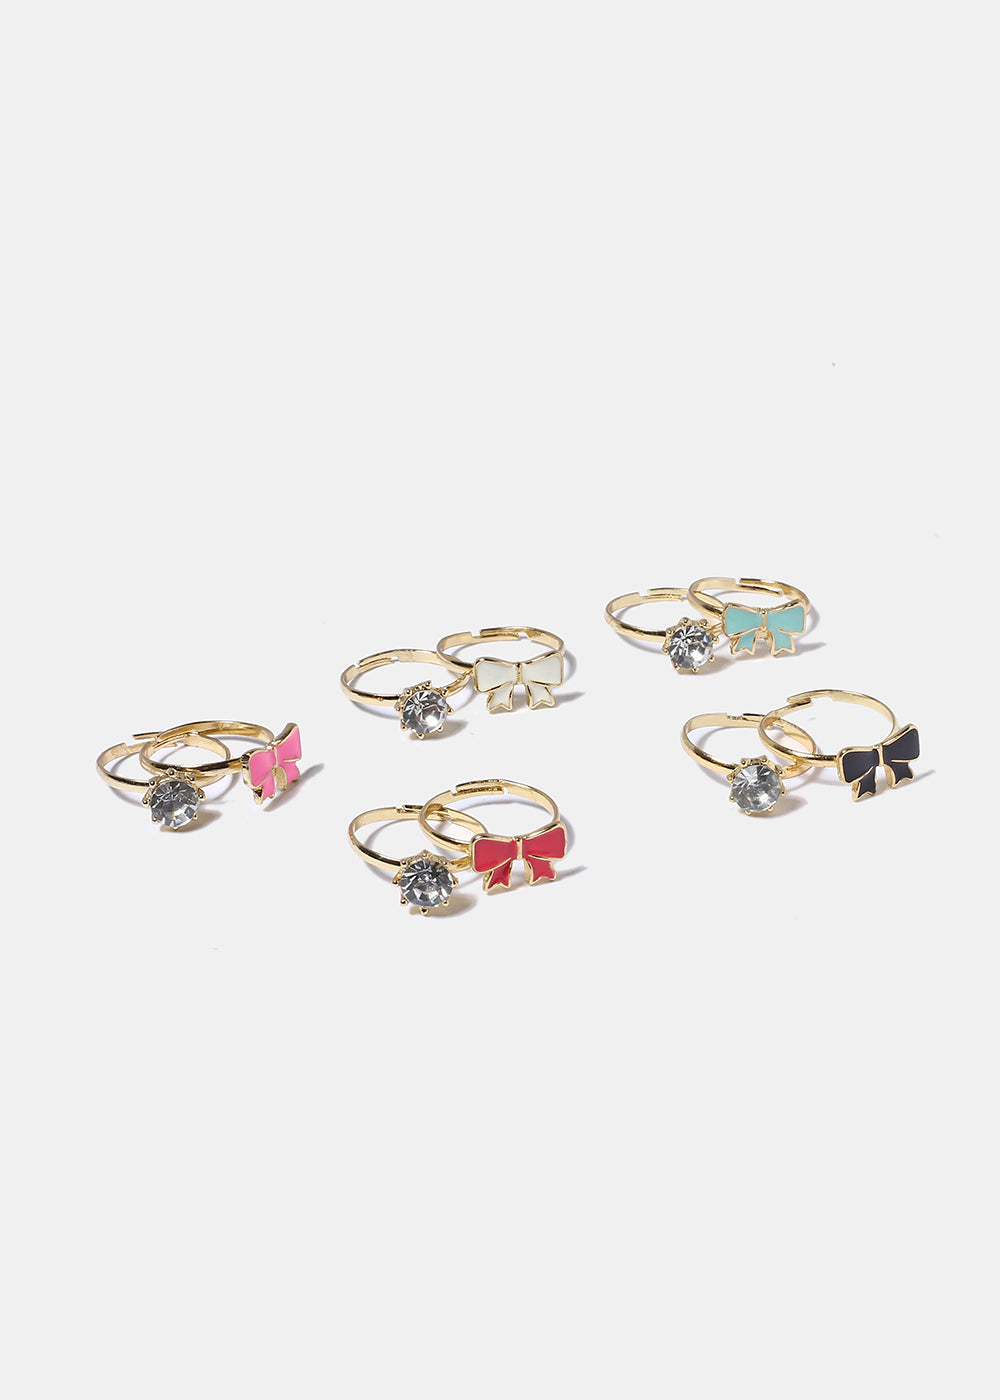 2 Piece Bow & Gem Ring Set